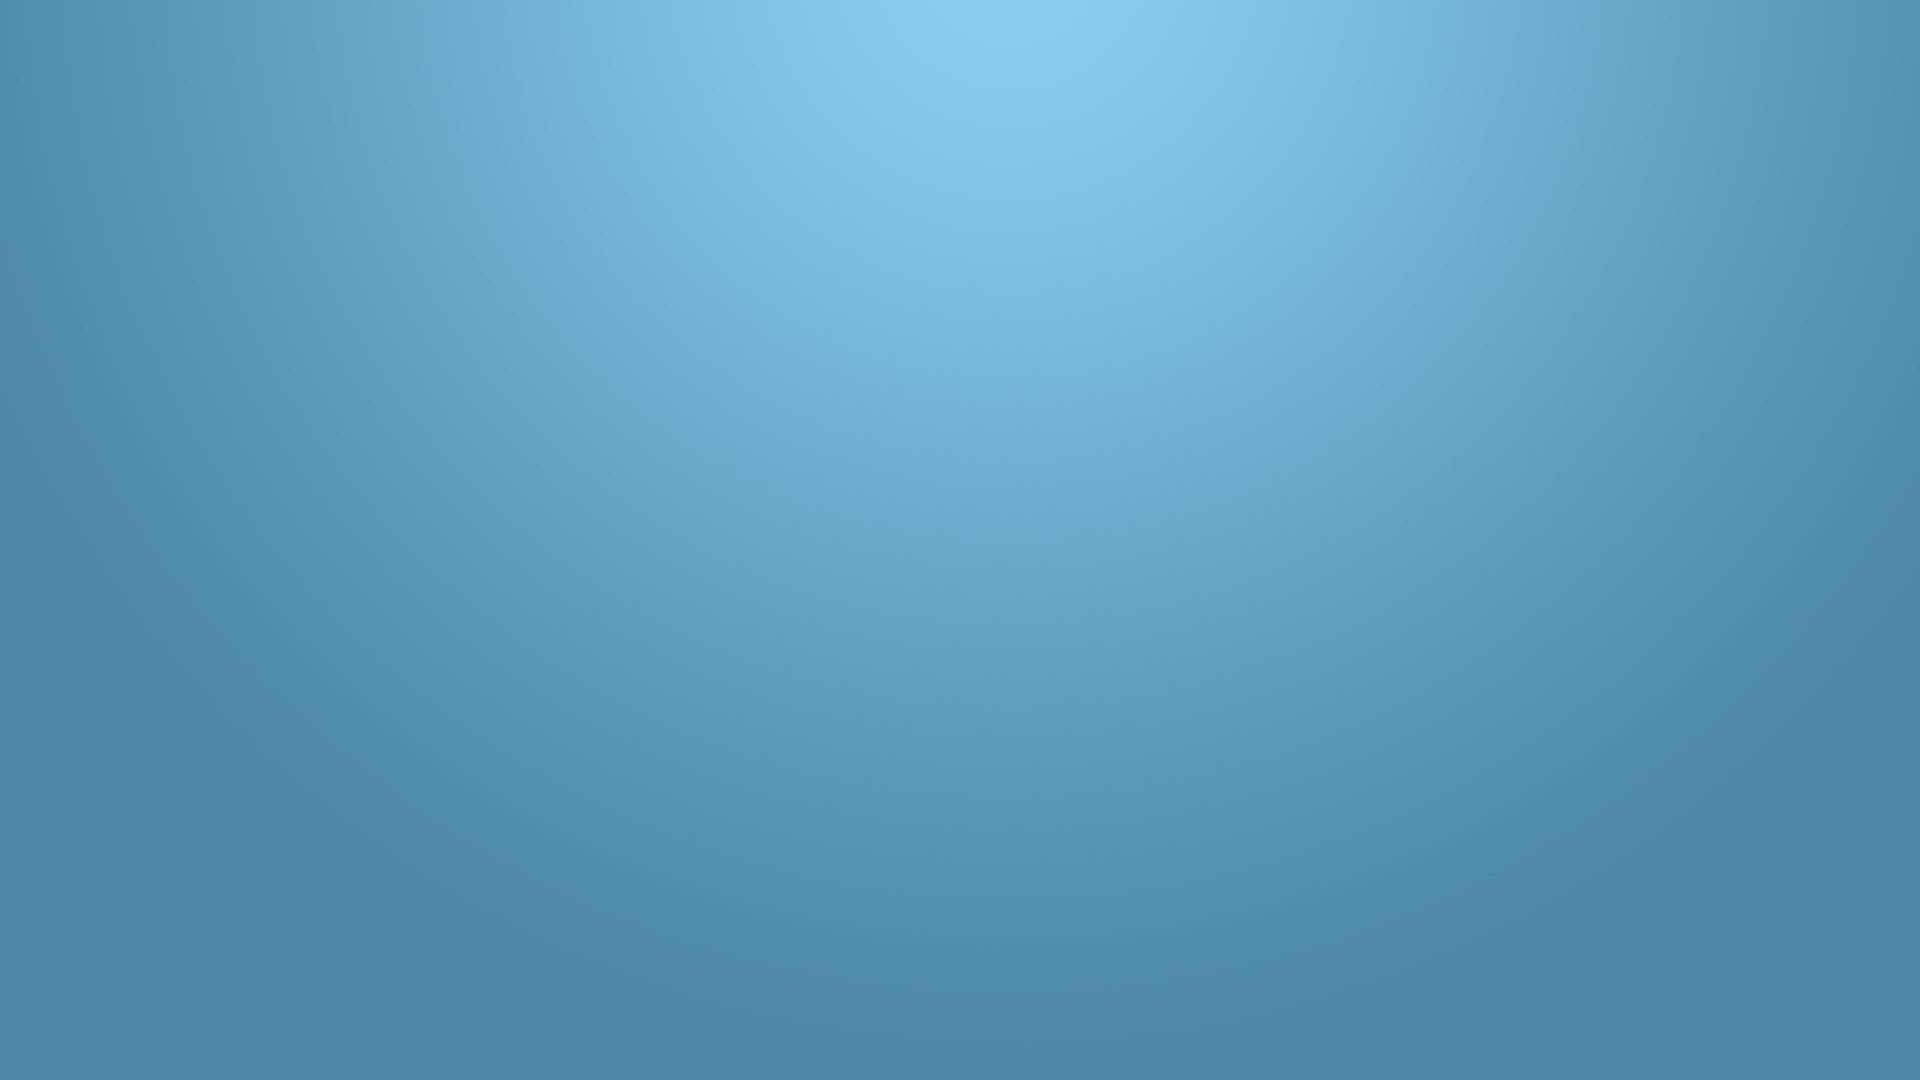 24 HD Solid Color Wallpapers – HDWallSource.com